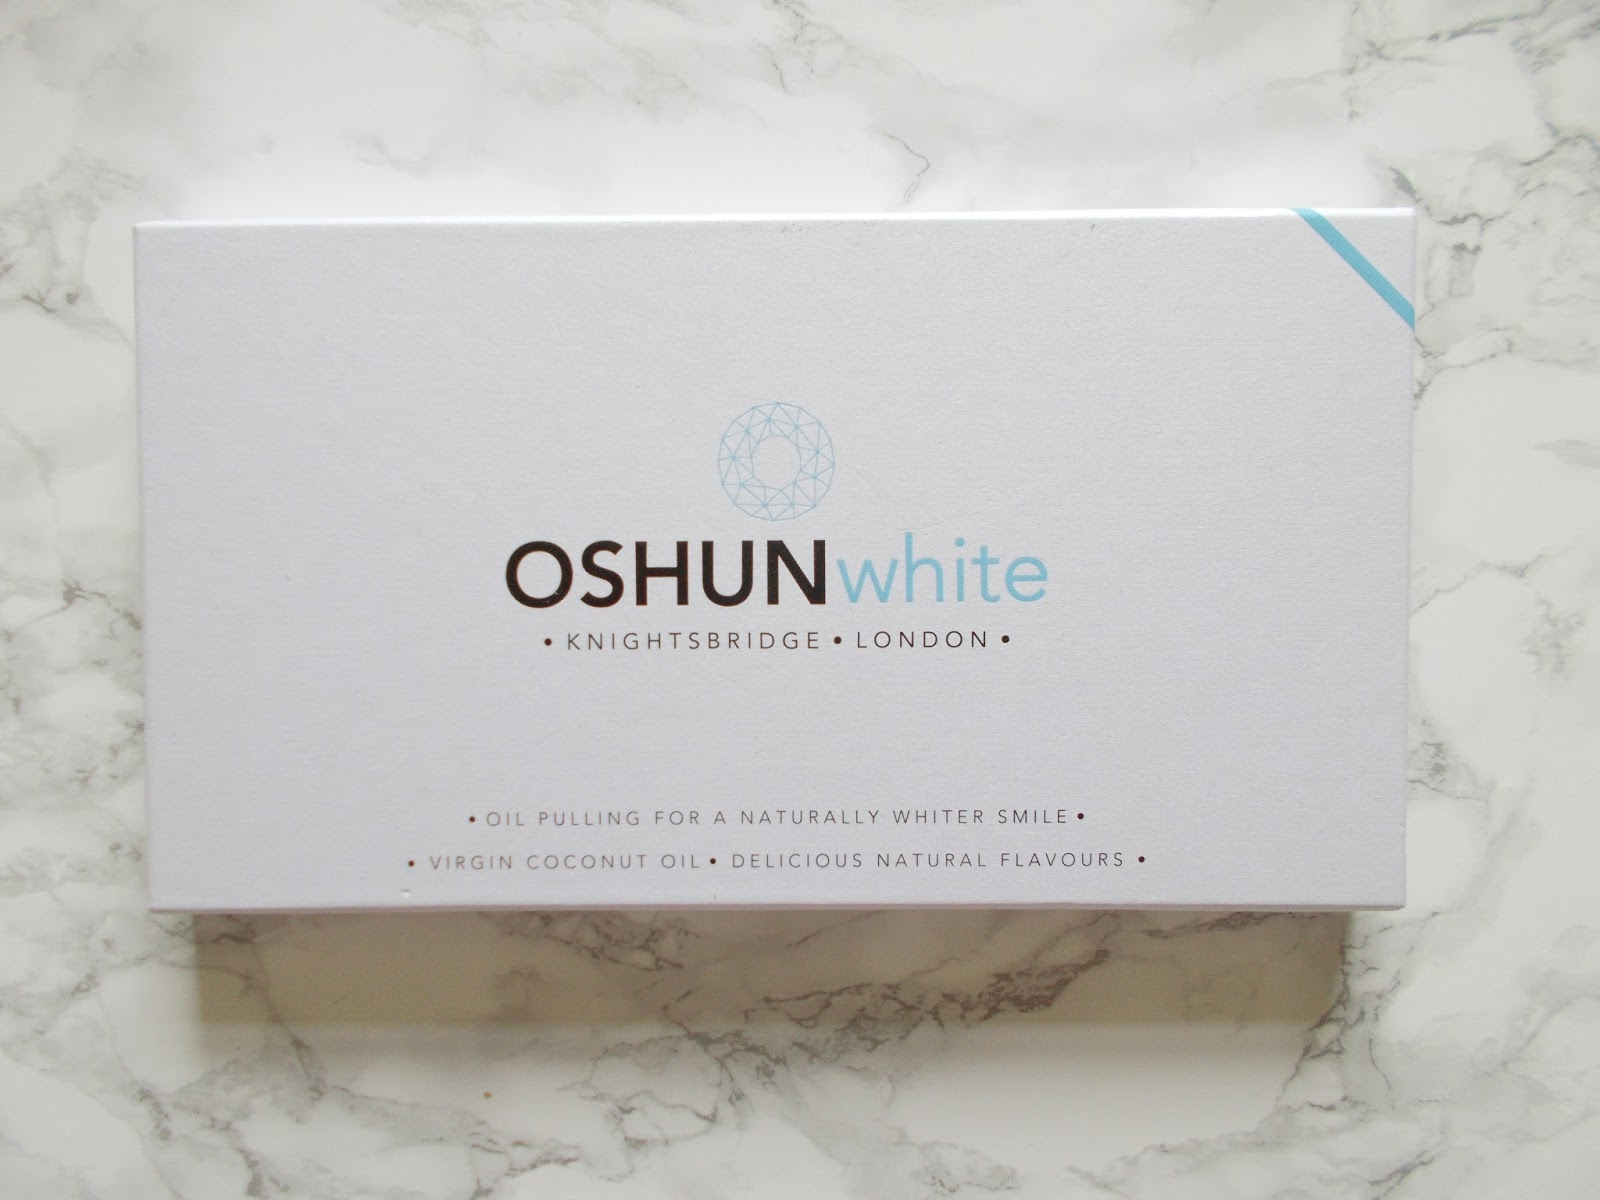 oshun white spearmint oil pulling review